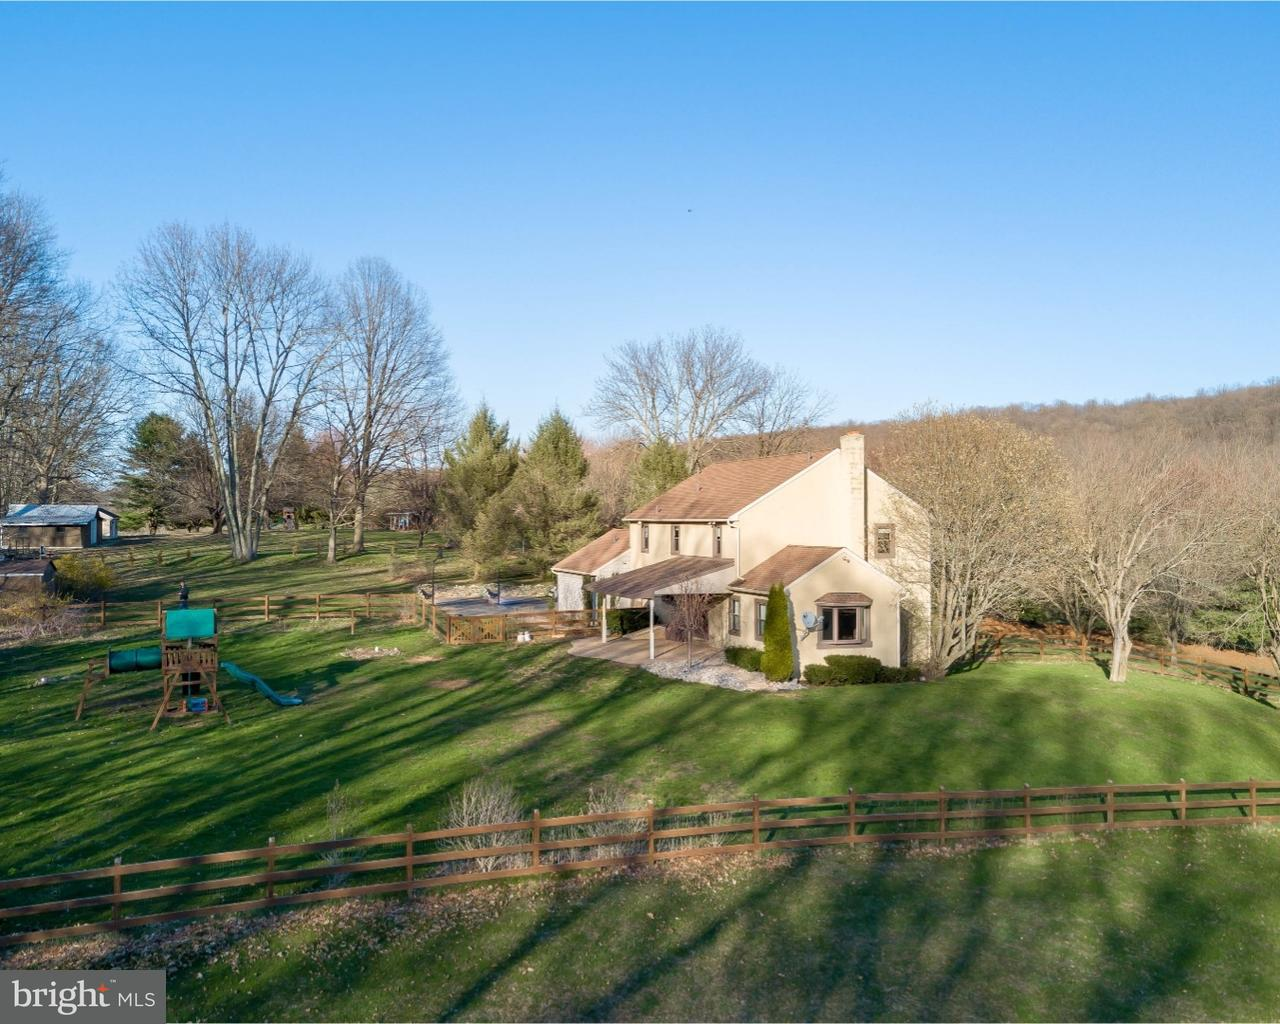 64 MINE RD, OLEY - Listed at $399,000, OLEY